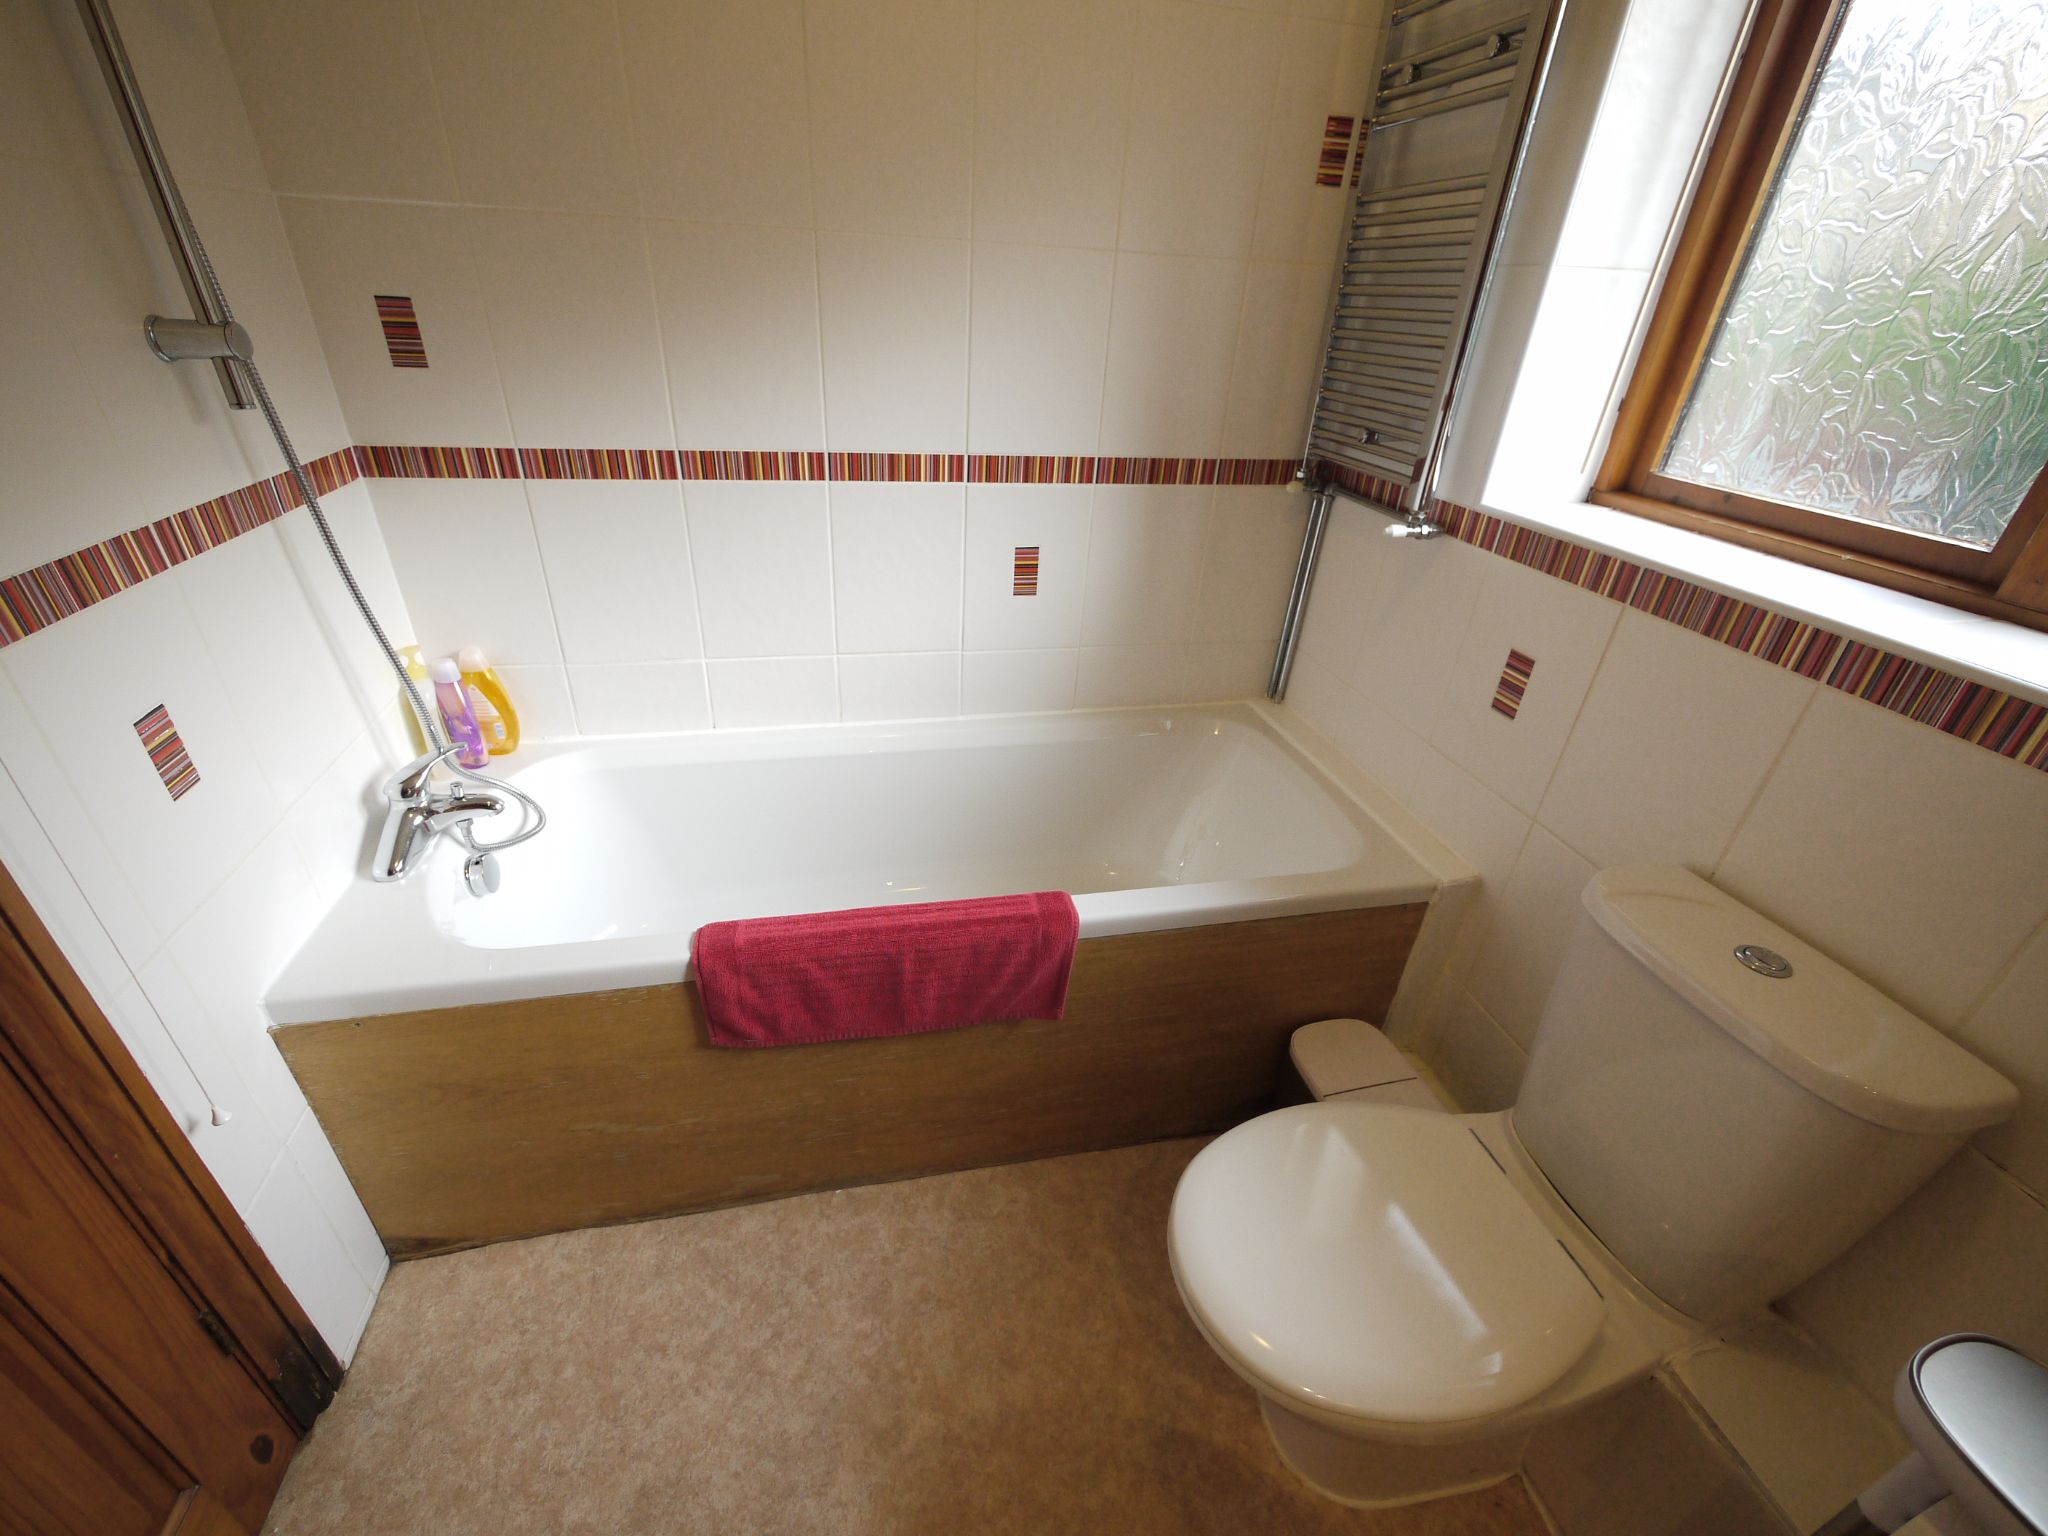 4 bedroom detached house SSTC in Brighouse - Bathroom 2.